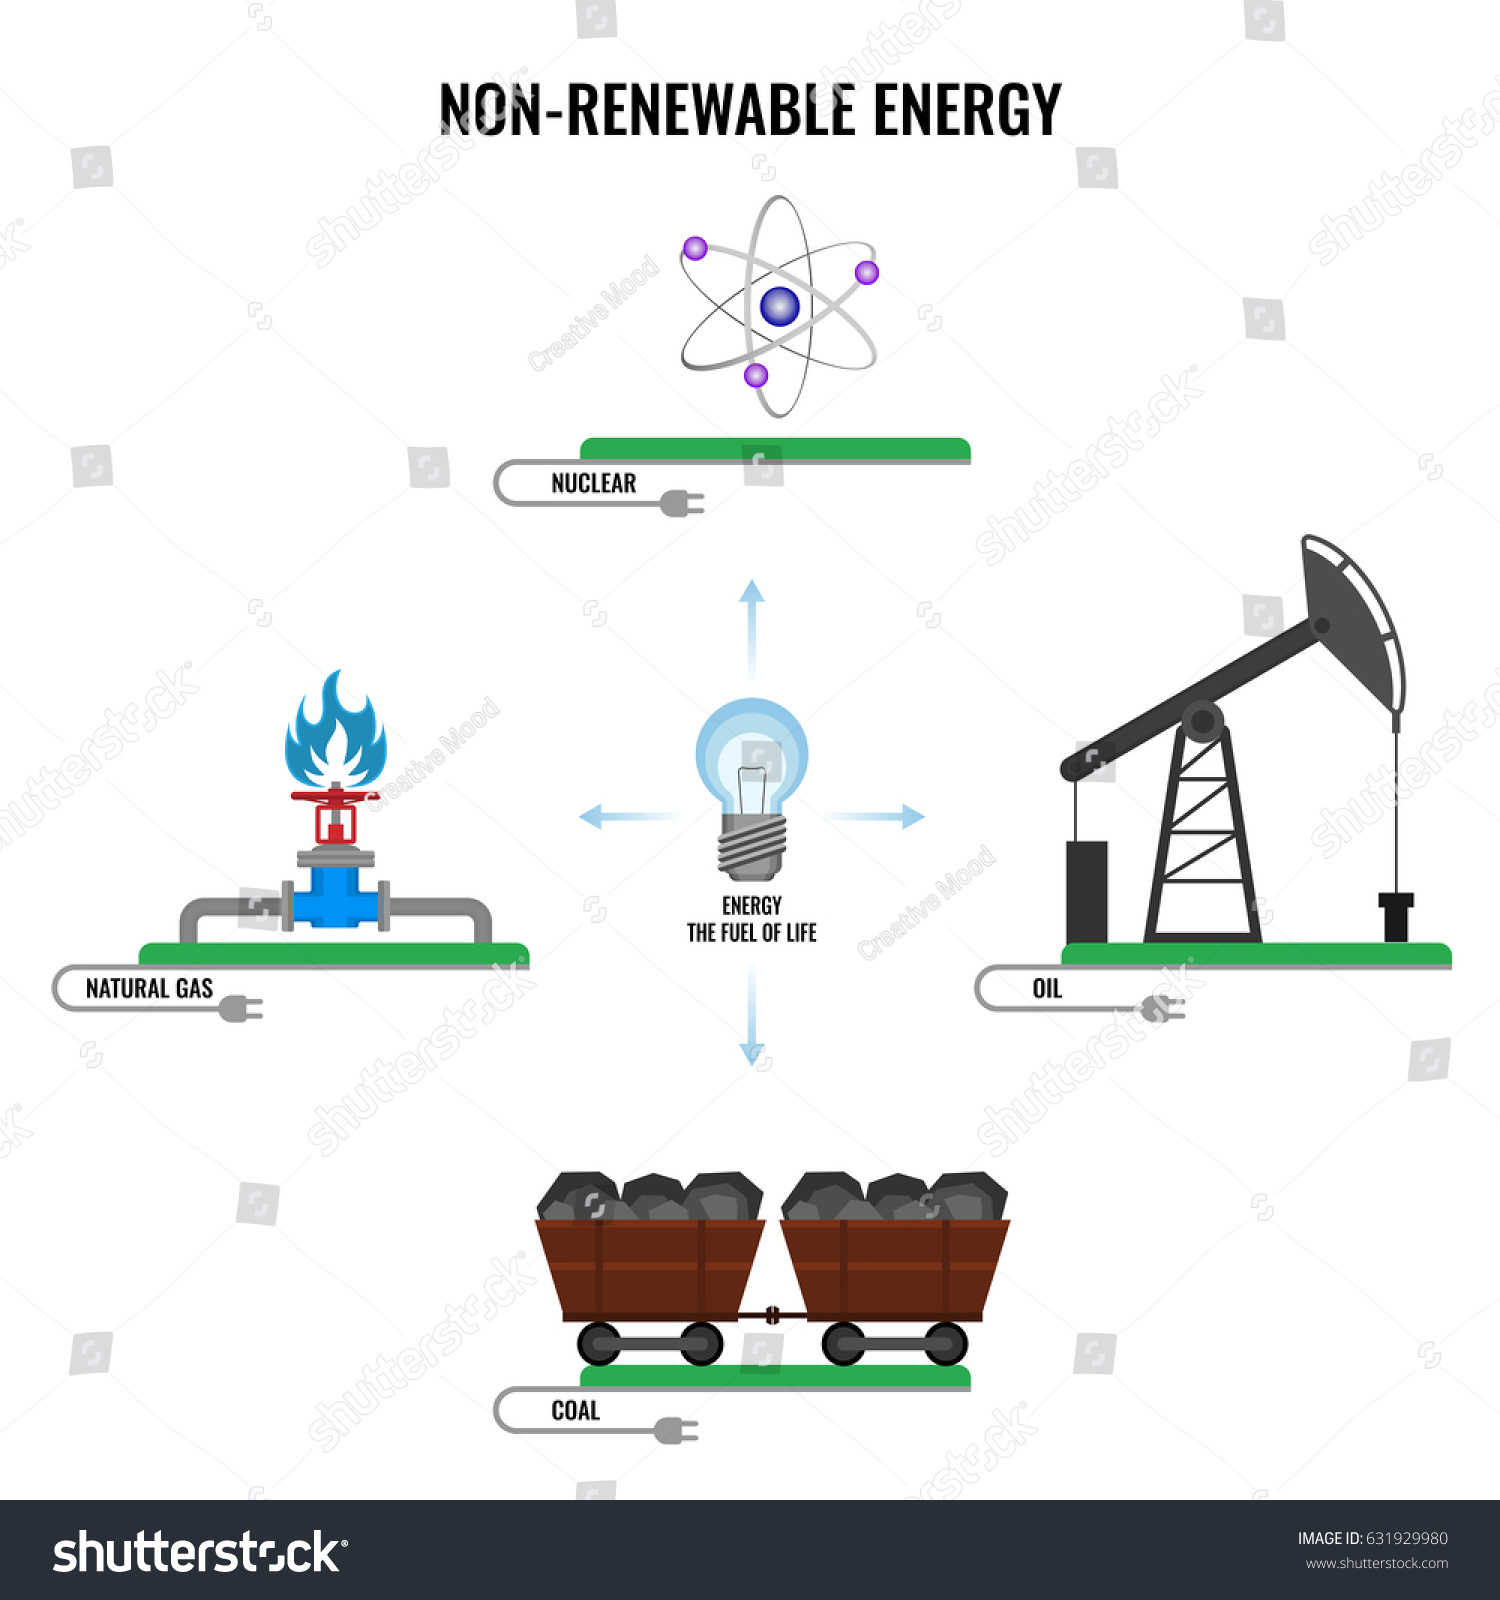 Nonrenewable Energy Types Colorful Vector Poster